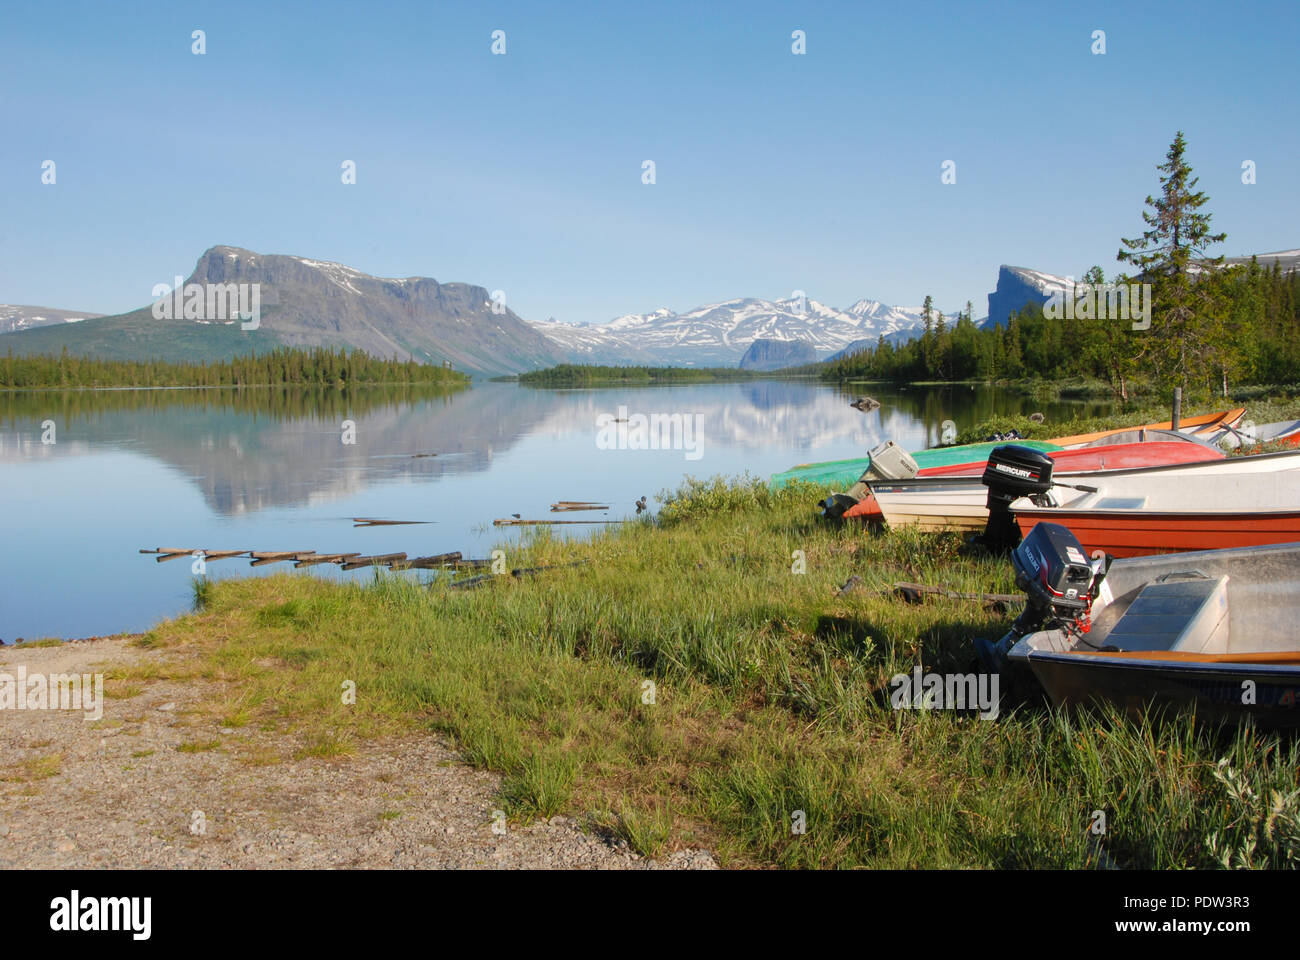 The beauty of Laponia Wilderness - Lake Laitaure Water Reflections. - Stock Image